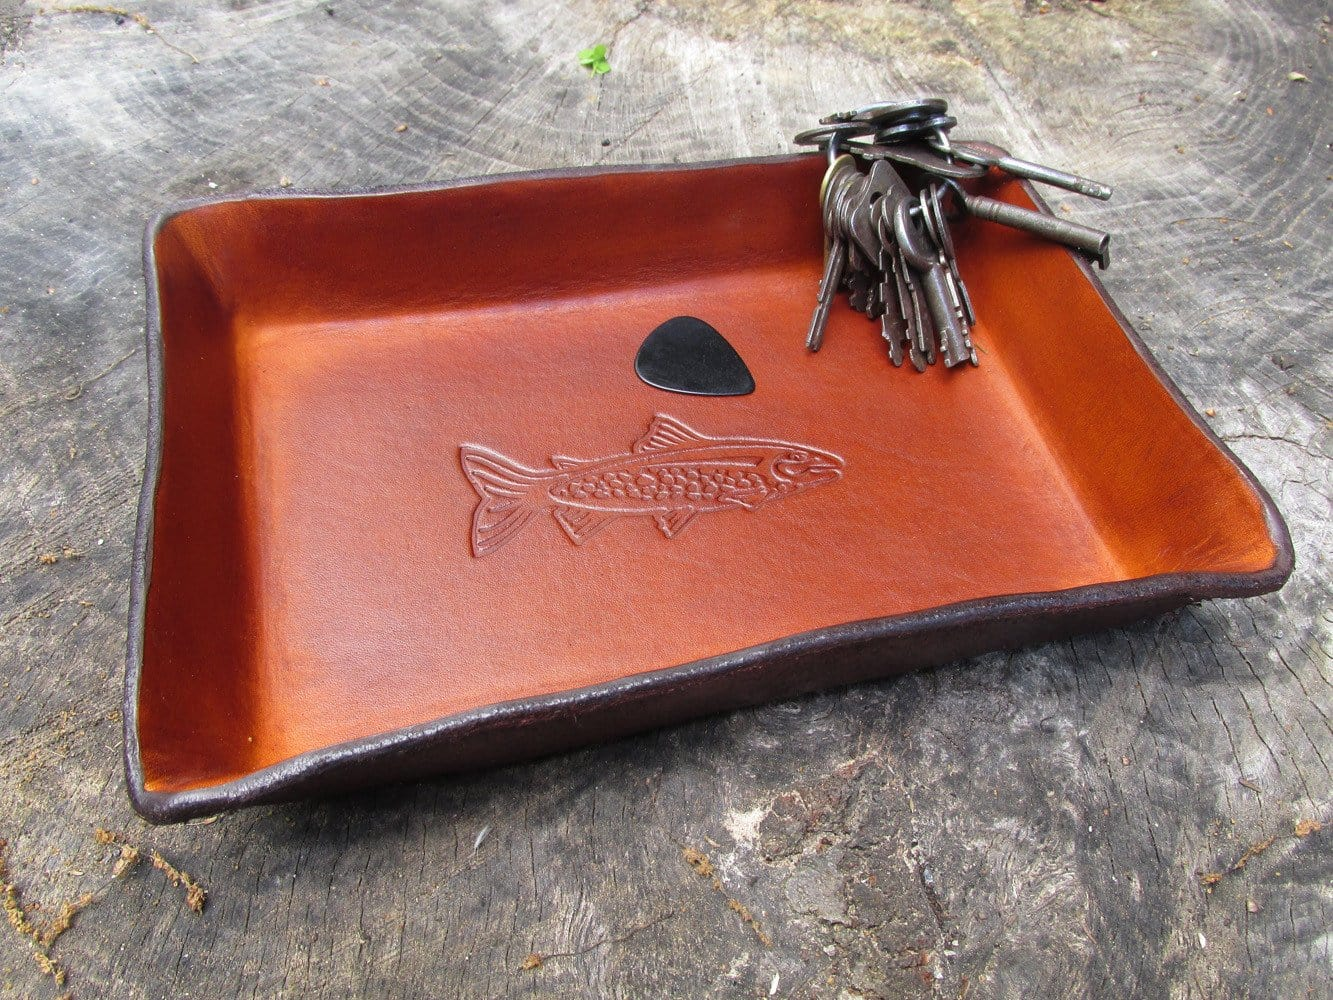 Leather desk valet tray. Trout design.